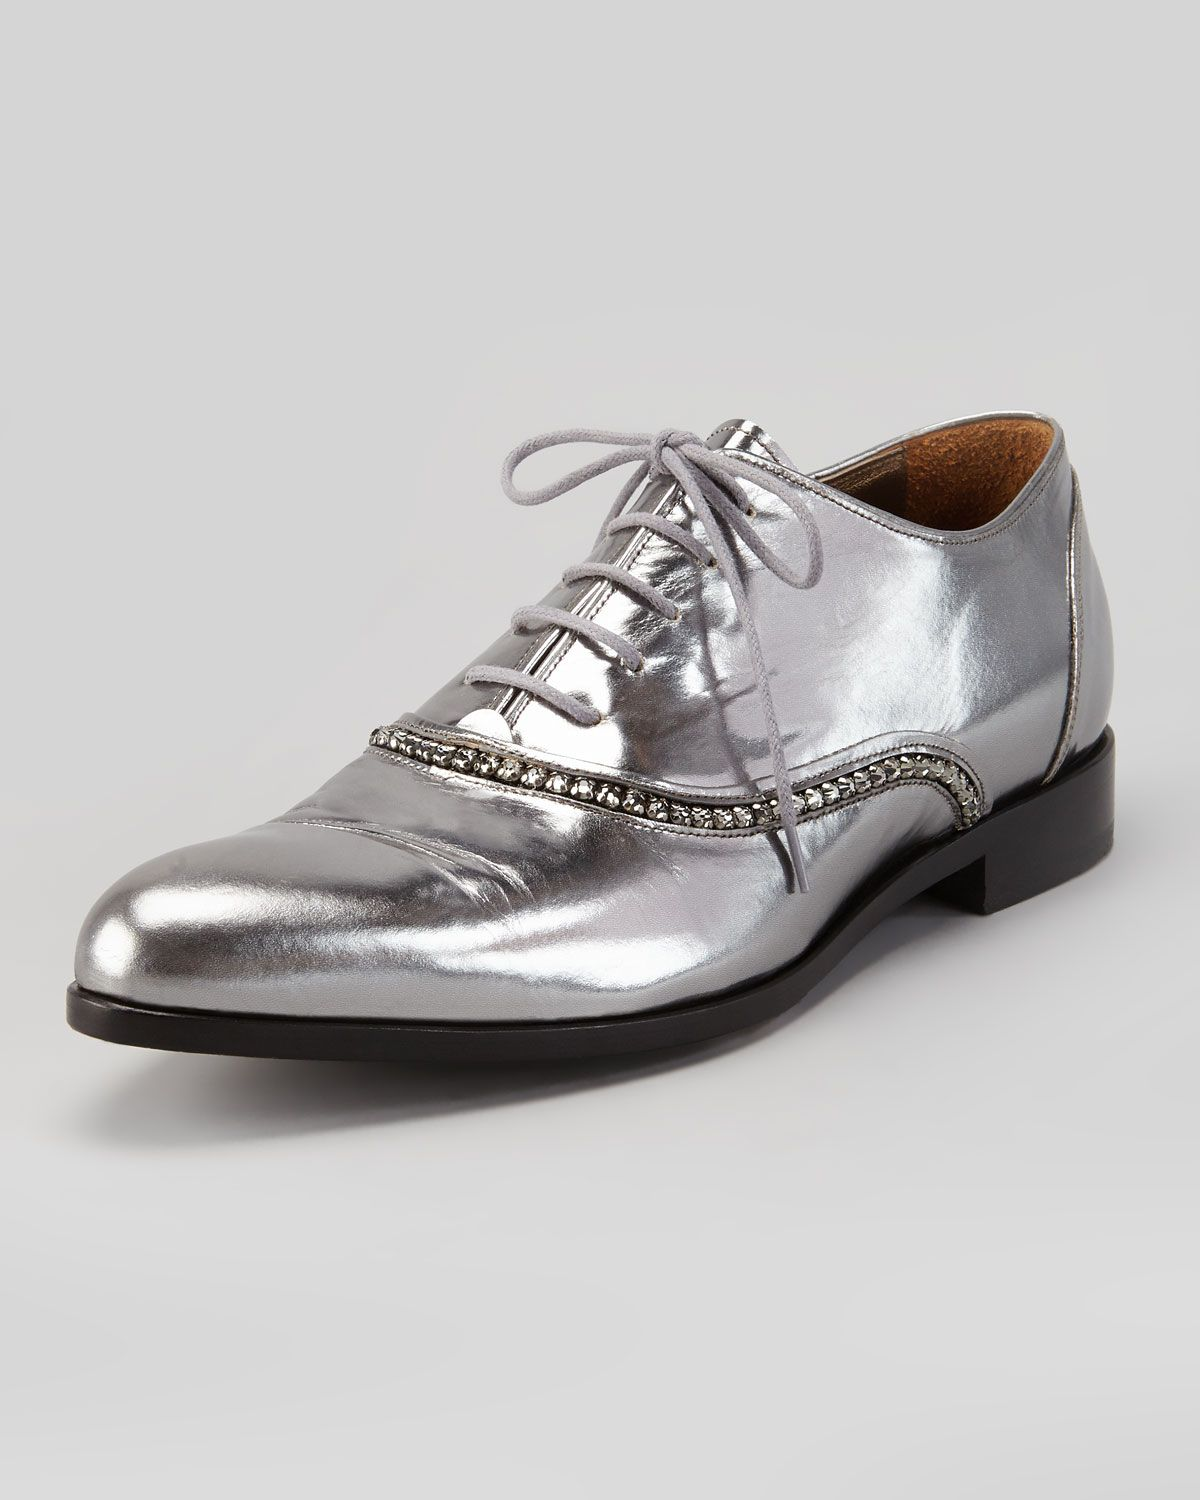 sast Lanvin Embellished Glitter Oxfords cheap sale with mastercard outlet popular xjJbHL2g